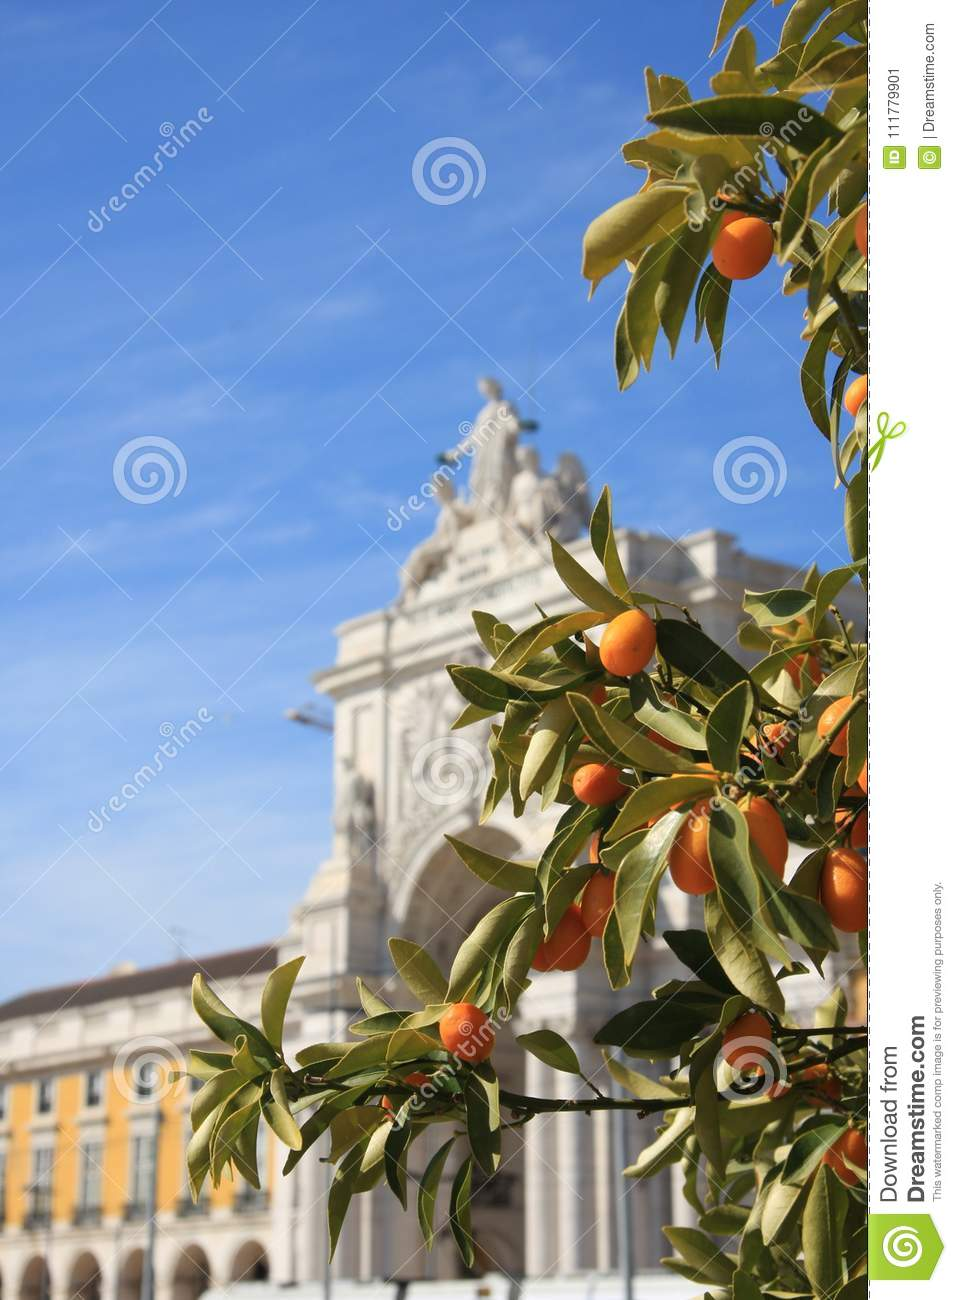 Orange tree on Commerce place in Lisbon, Portugal. Sunny day.